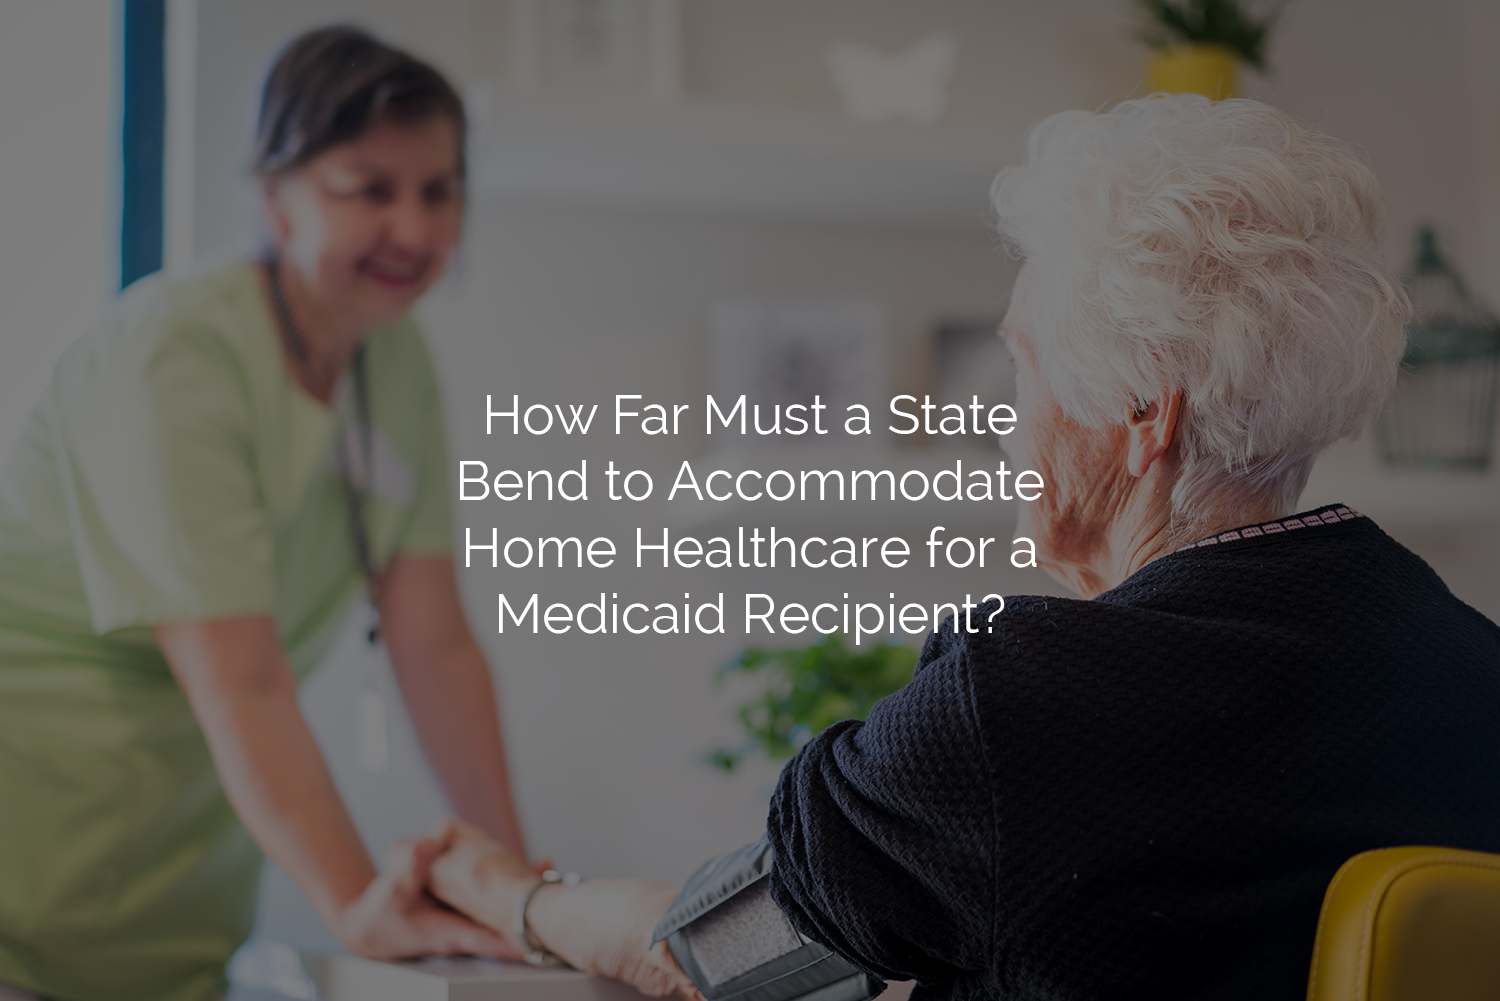 Accommodate Home Healthcare for a Medicaid Recipient